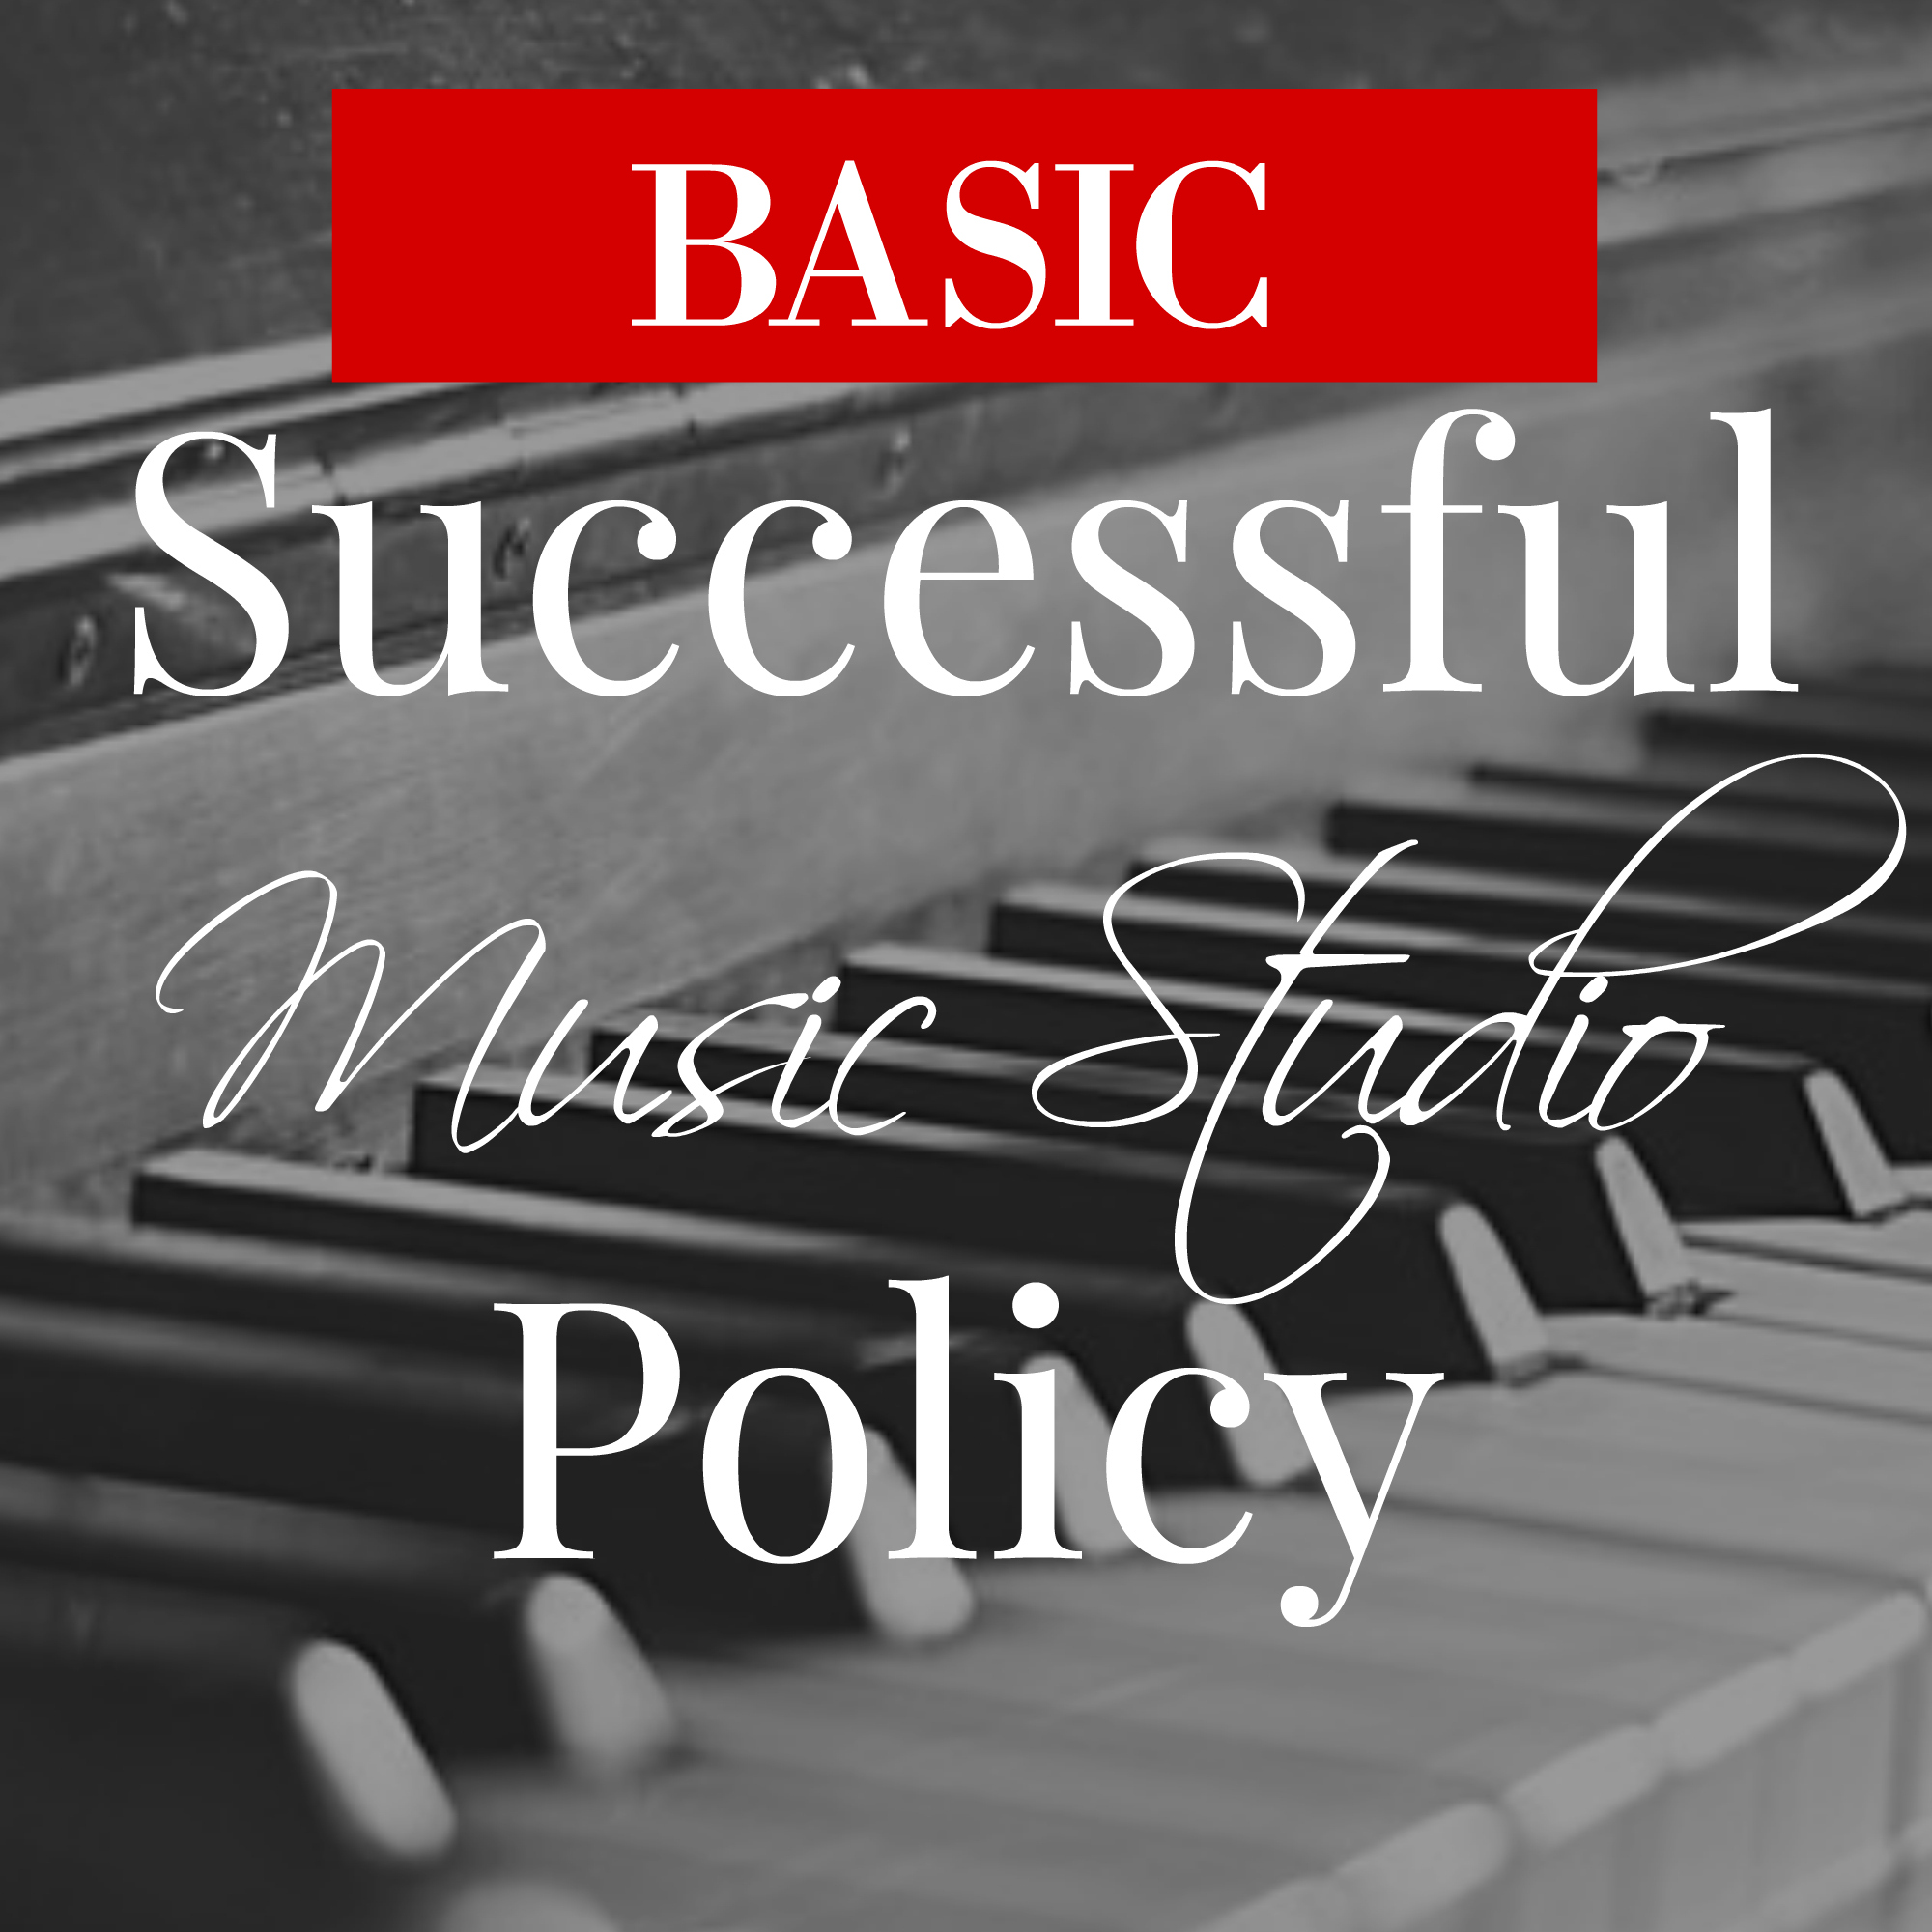 BASIC MUSIC POLICY - Customizable Starter policy WITH EVERYTHING YOU NEED FOR AN IRONCLAD CONTRACT